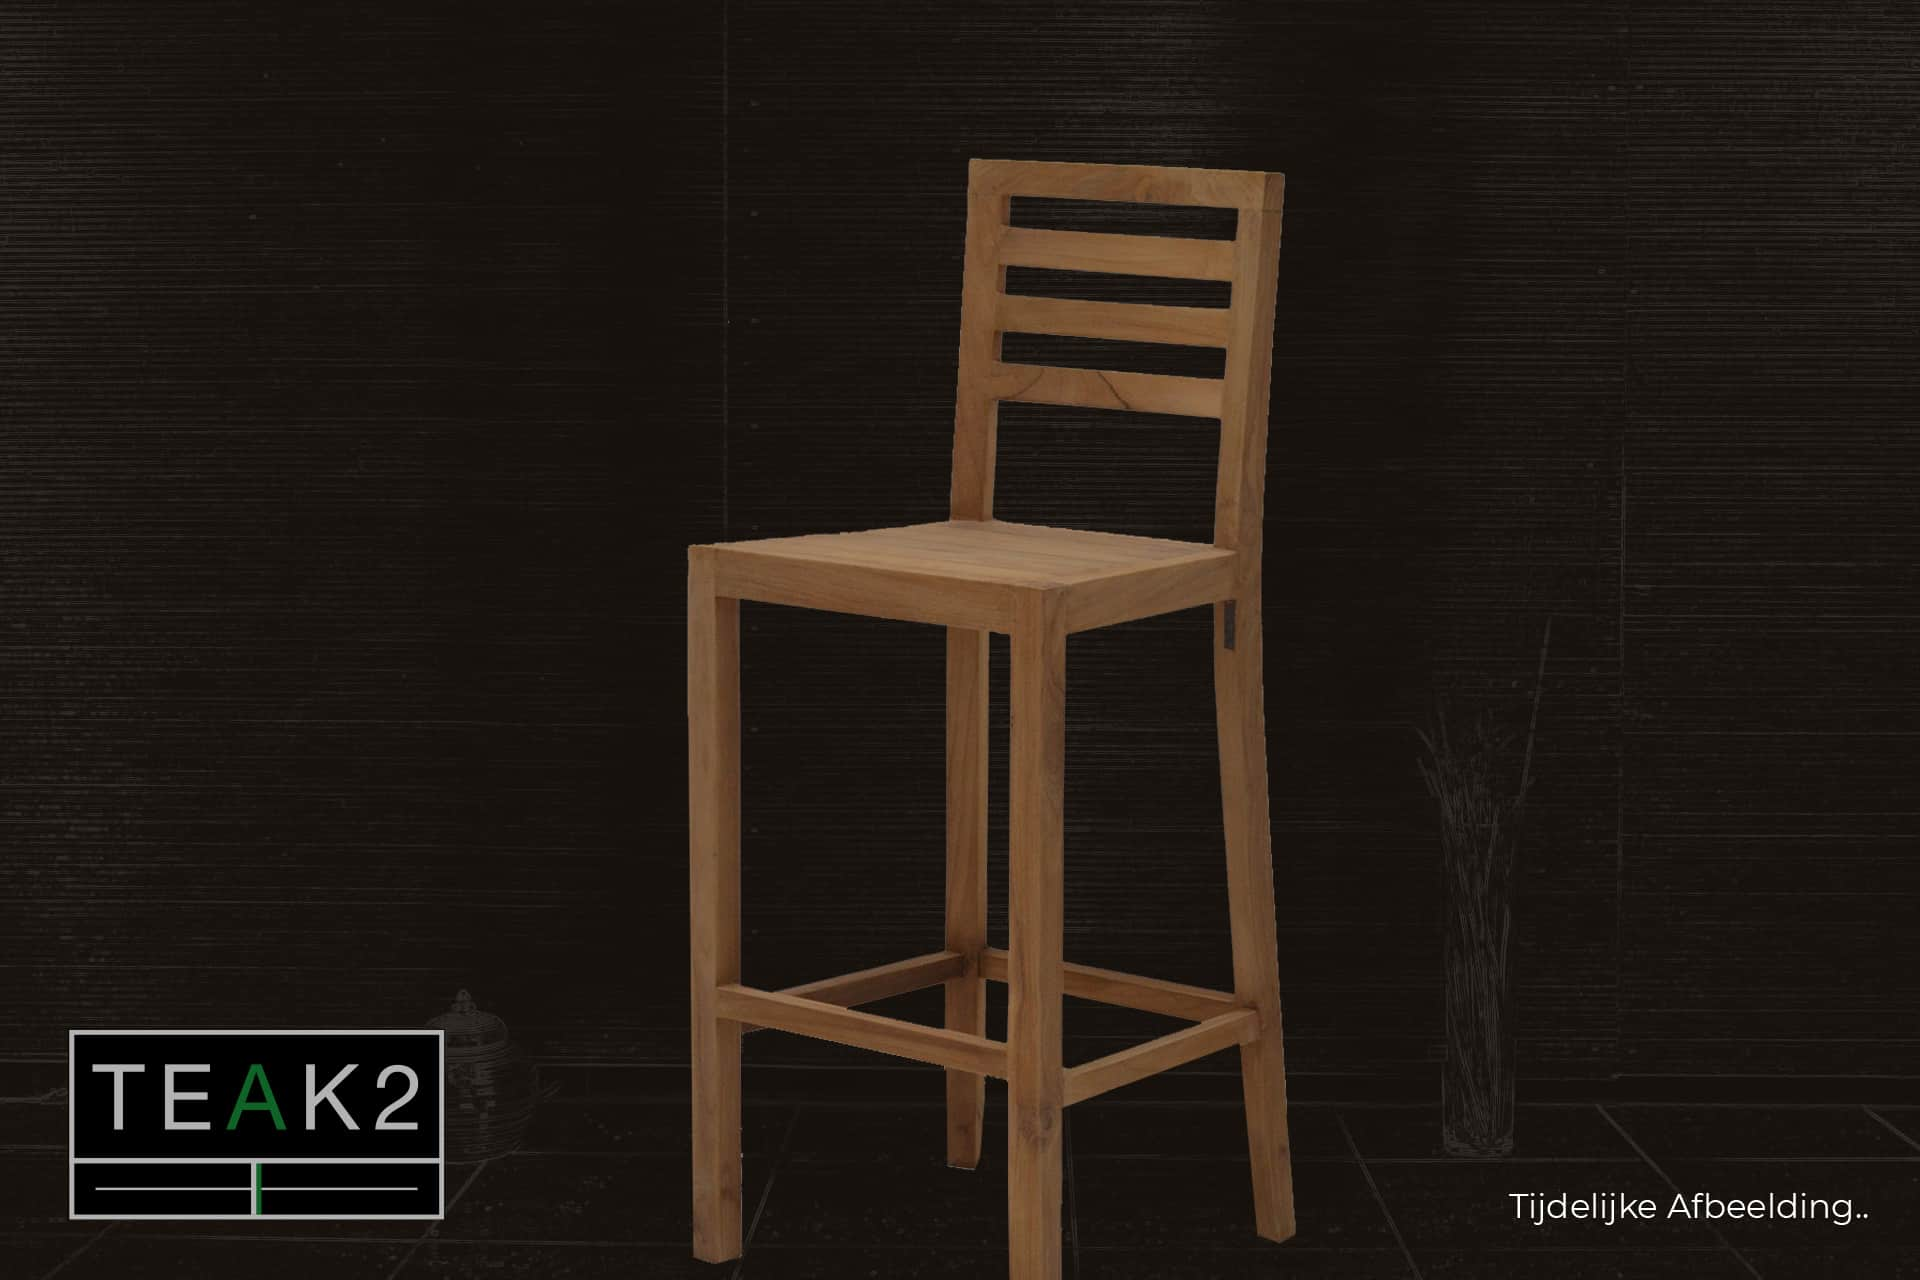 Bar stool Teak Jabatan | modern bar stool wood in untreated smooth teak. Bar stool with a sleek, modern look and back - TEAK2.